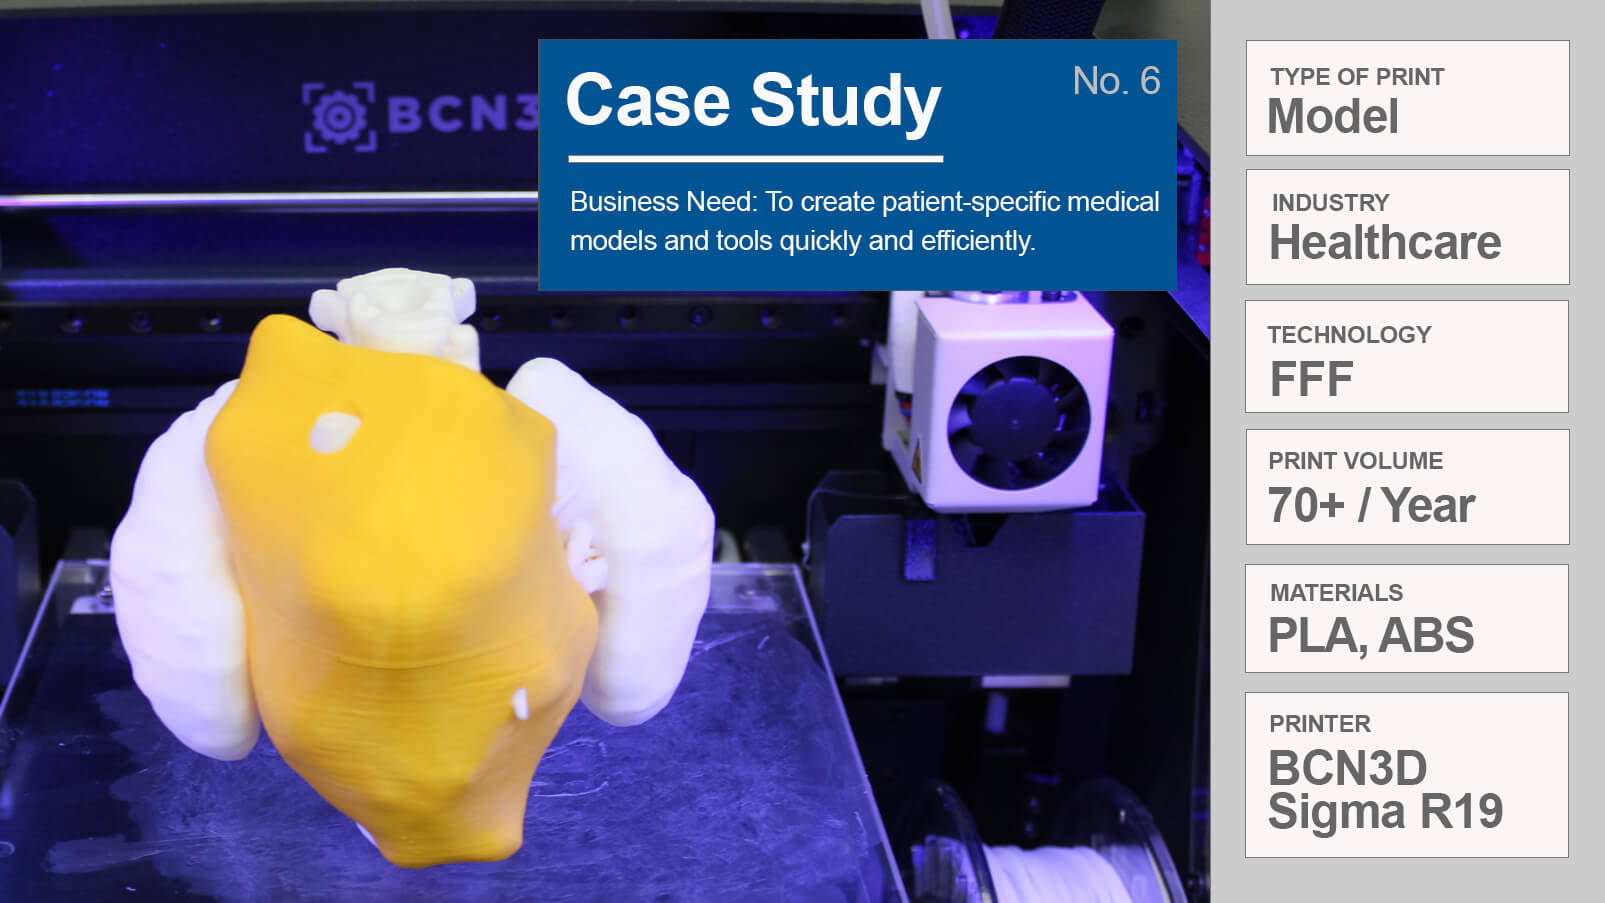 Case Study: Why Hospitals Need 3D Printers | All3DP Pro